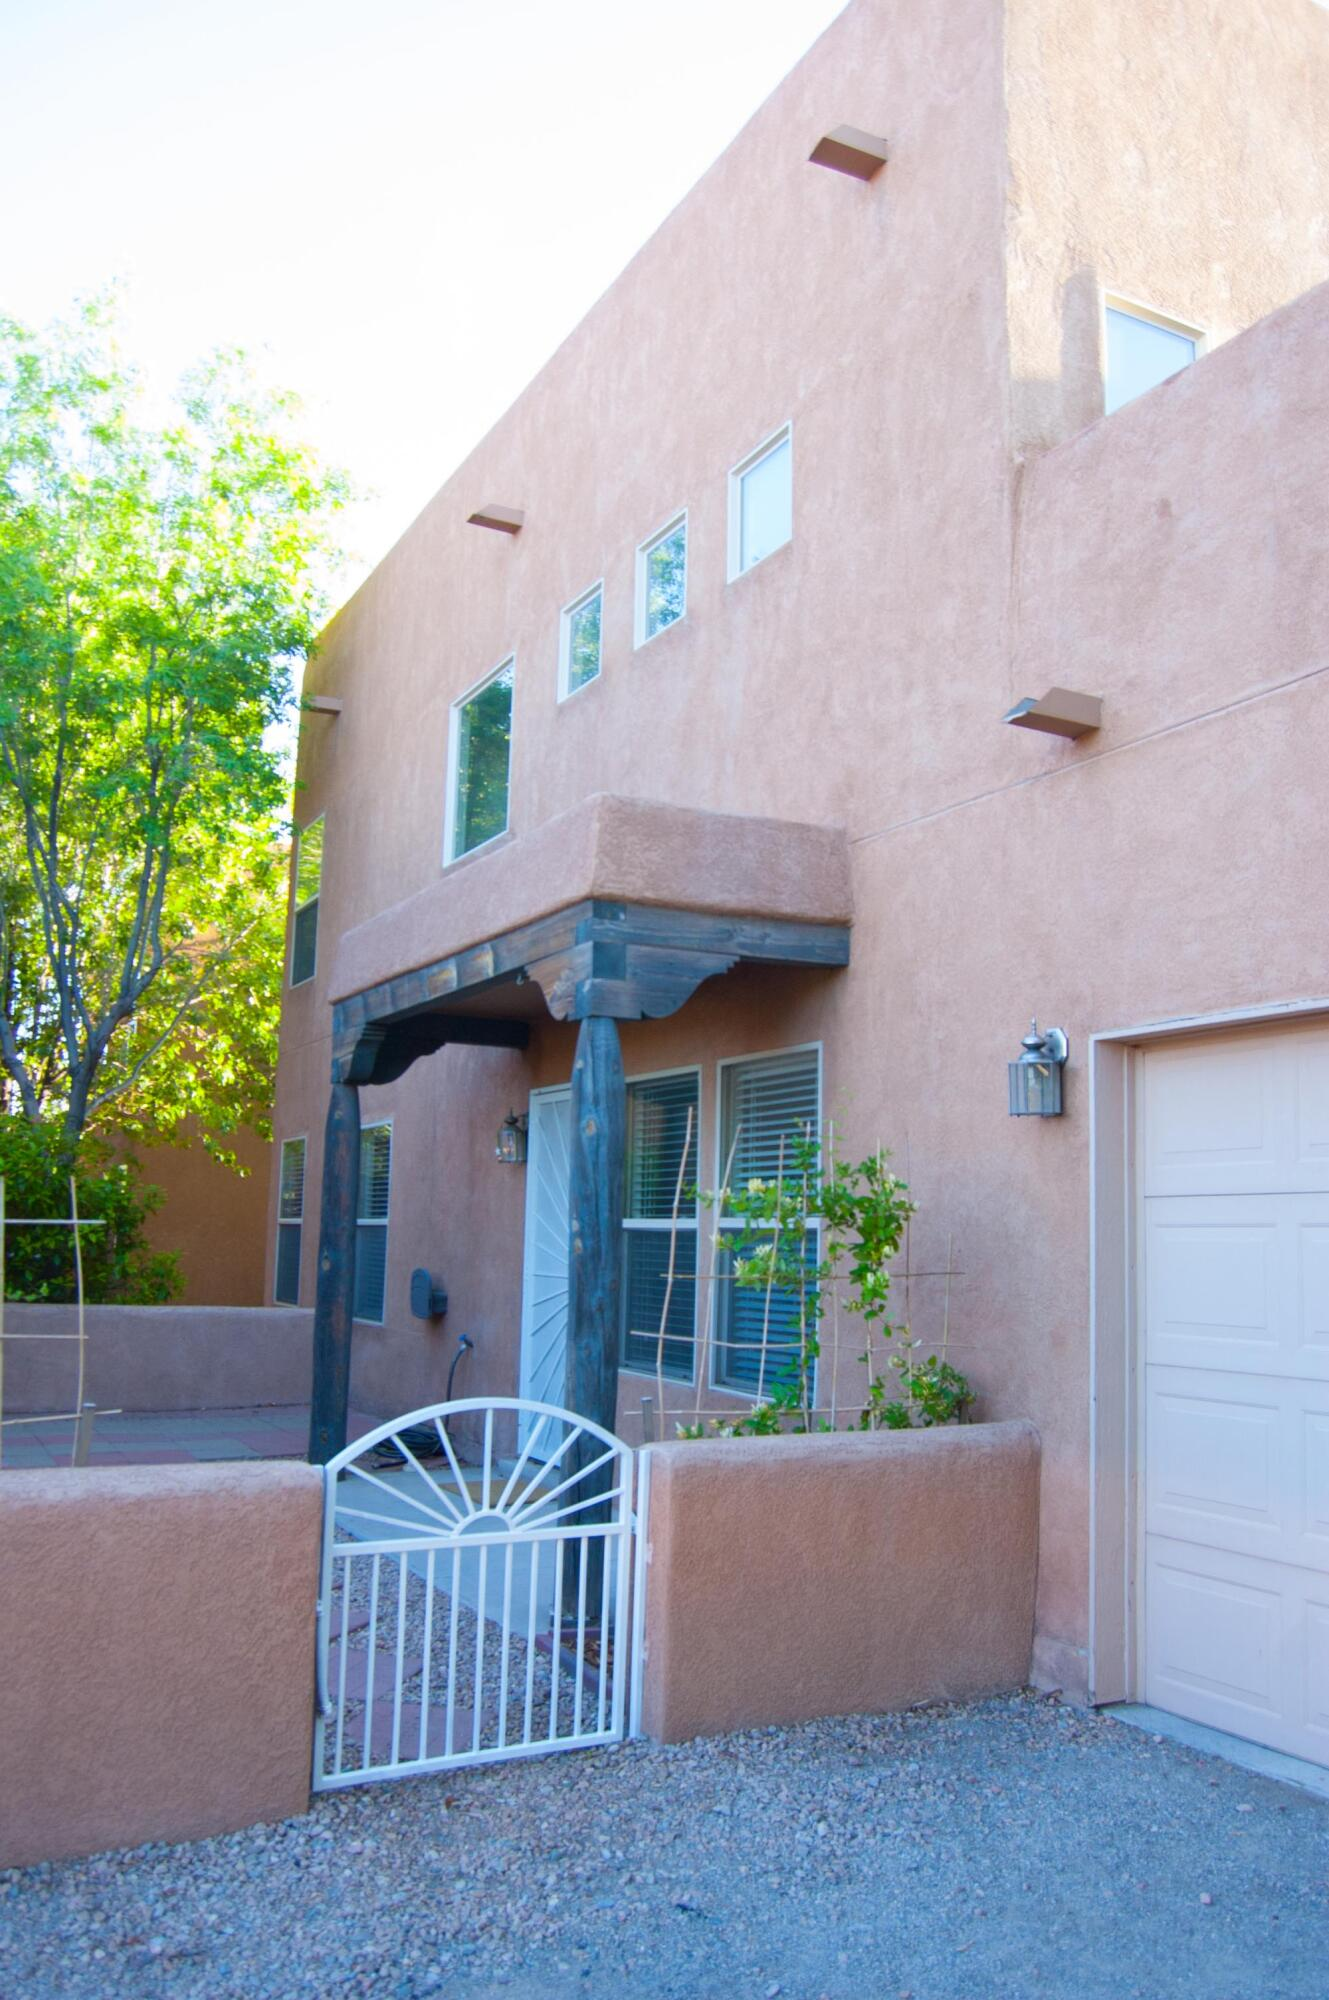 This beautiful townhome in the much desired Los Jardines subdivision is a must see. Owner's suite and bathroom on the main floor, 2nd bedroom and full bathroom upstairs along with storylight windows.  Stainless steel appliances, large patio and great natural light make this a must see. Please call today to schedule your private viewing.